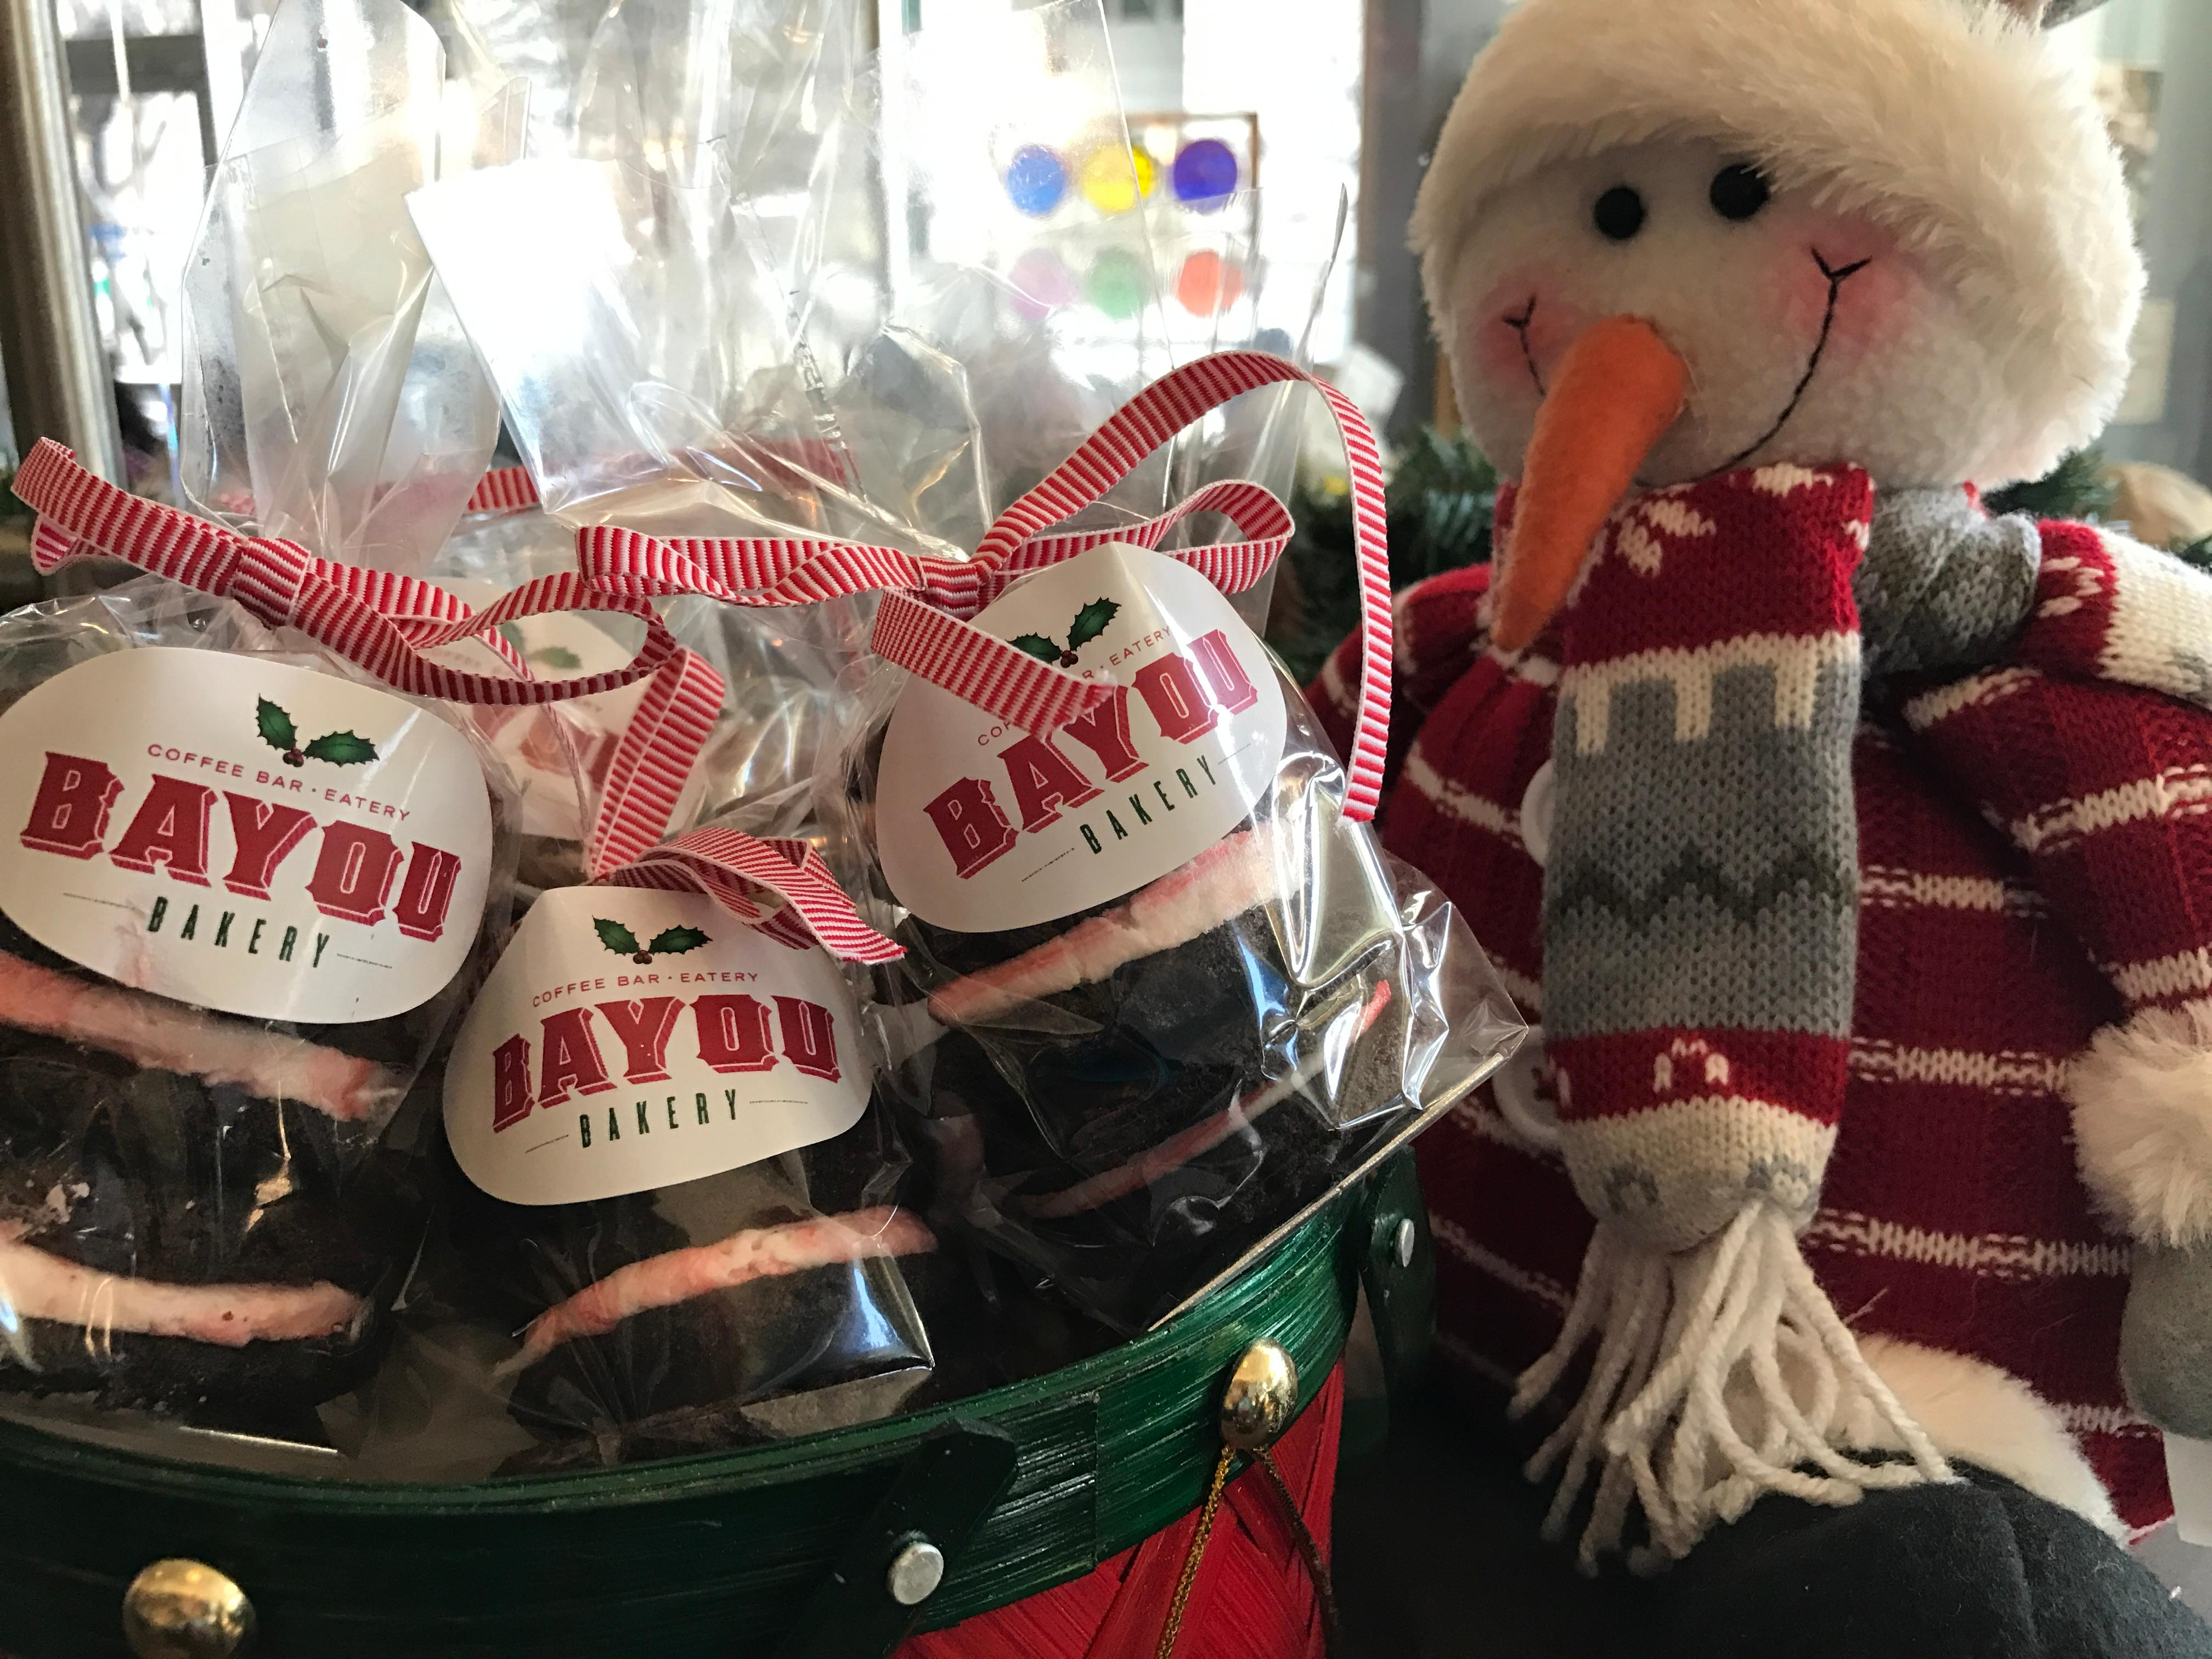 Sweet Stocking Stuffers from Bayou Bakery // Price: $5-$8 each // Buy at the bakery // www.bayoubakerydc.com // (Image: Bayou Bakery)<p></p>